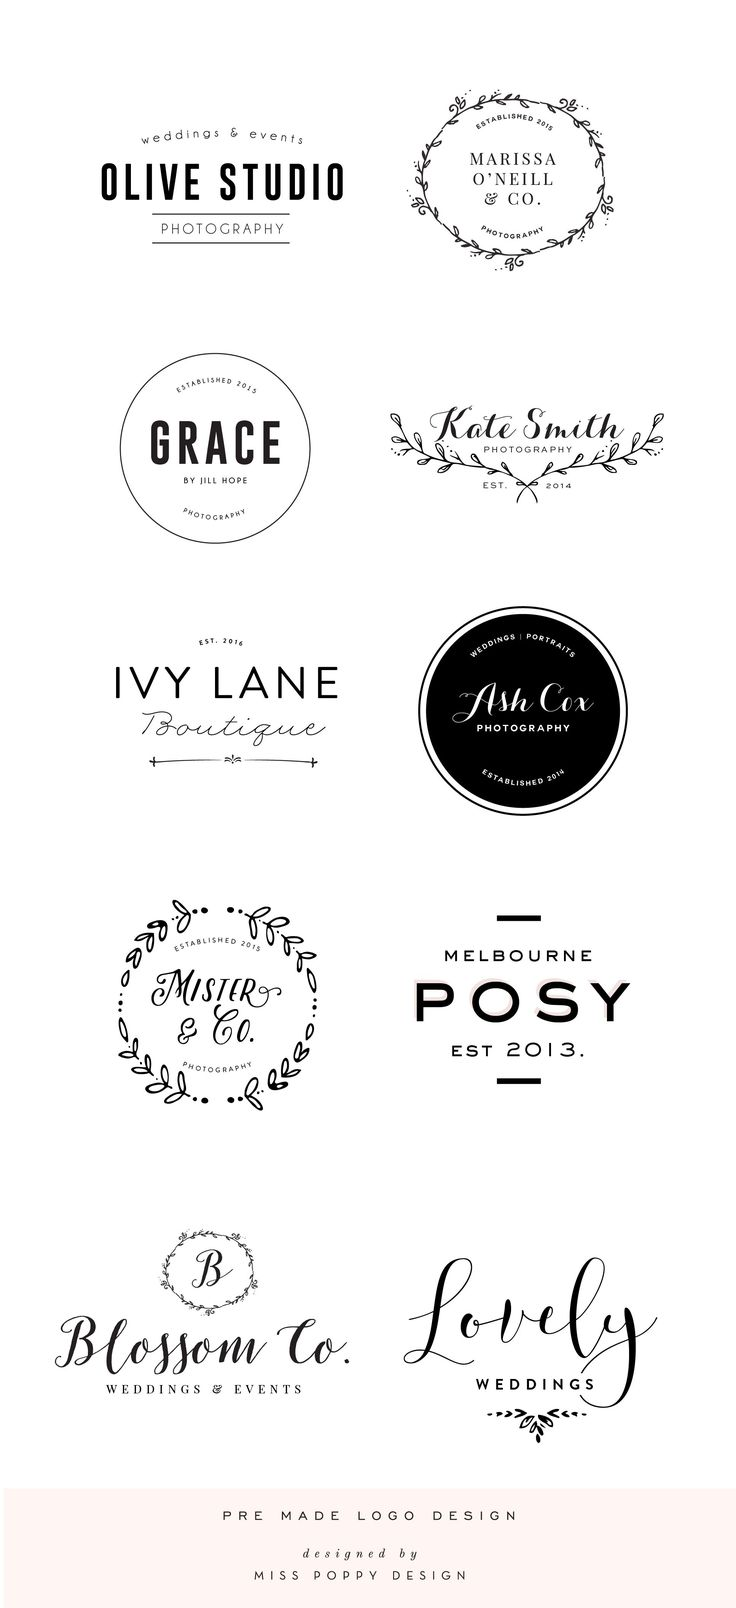 Pre Made Logo Design: Boutique: Phtographer: Small Business: Florist: Wedding: Laurel: Calligraphy // by Miss Poppy Design www.misspoppydesignshop.com  https://www.kznwedding.dj